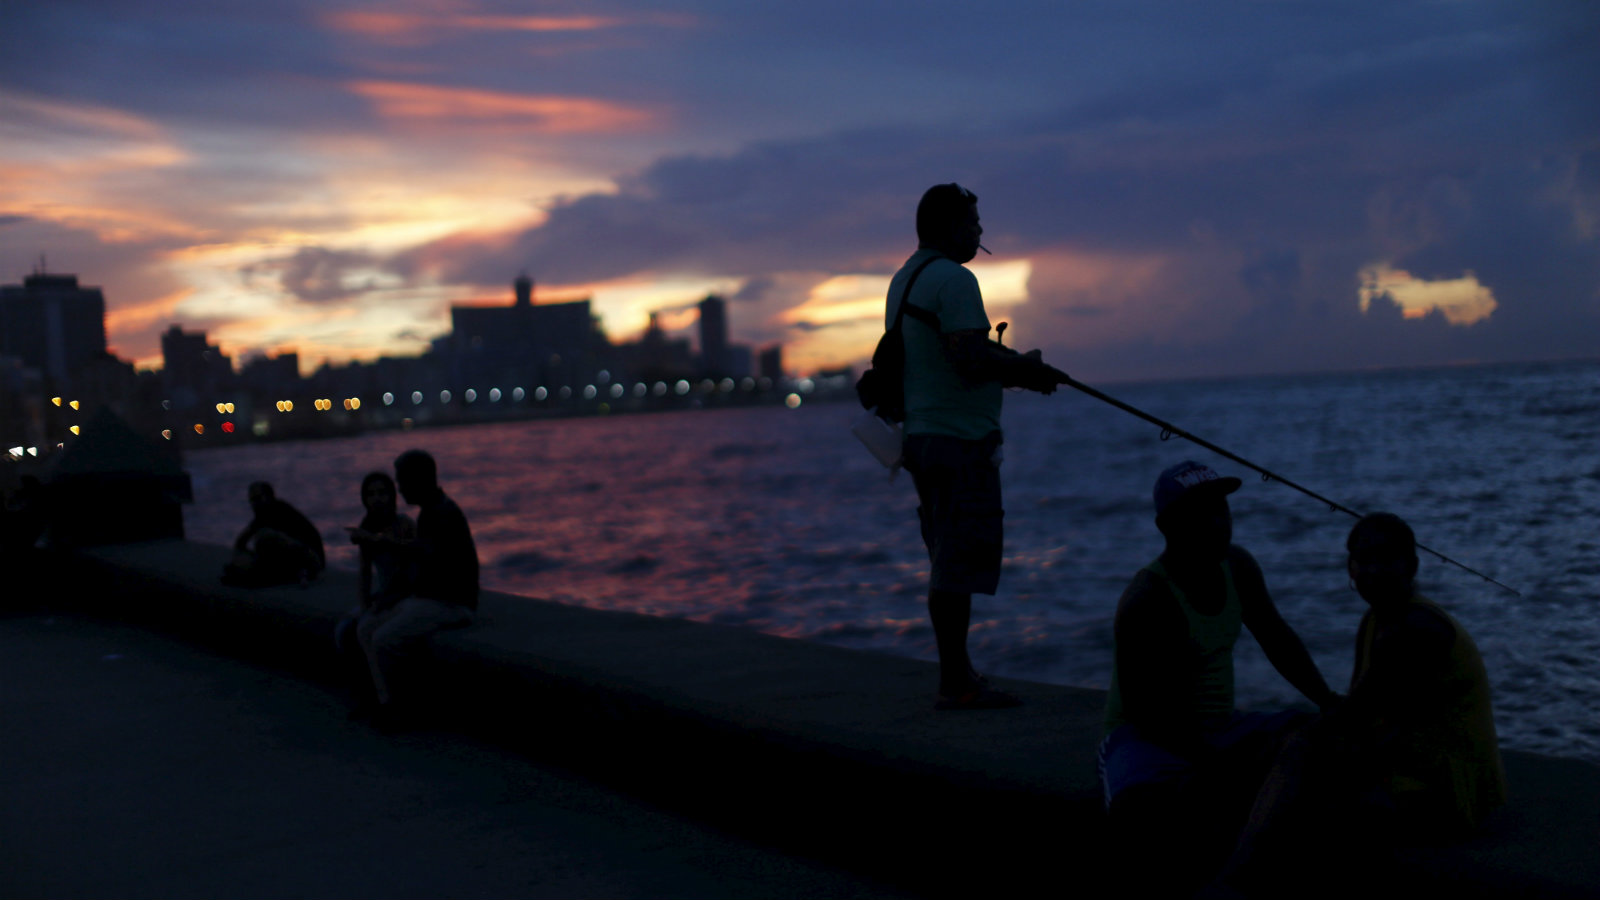 A resident fishes as others hang out at the Malecon seafront in Havana September 18, 2015. The Obama administration announced wide-ranging new rules on Friday to ease trade, travel and investment restrictions with Cuba, the latest effort to chip away at the long-standing U.S. economic embargo amid a diplomatic thaw between the two former Cold War foes. The announcement came just as Pope Francis, who played an instrumental role in the diplomatic opening late last year, prepares to visit Cuba this weekend before heading to the United States next week. The Vatican has long condemned the embargo against Cuba.